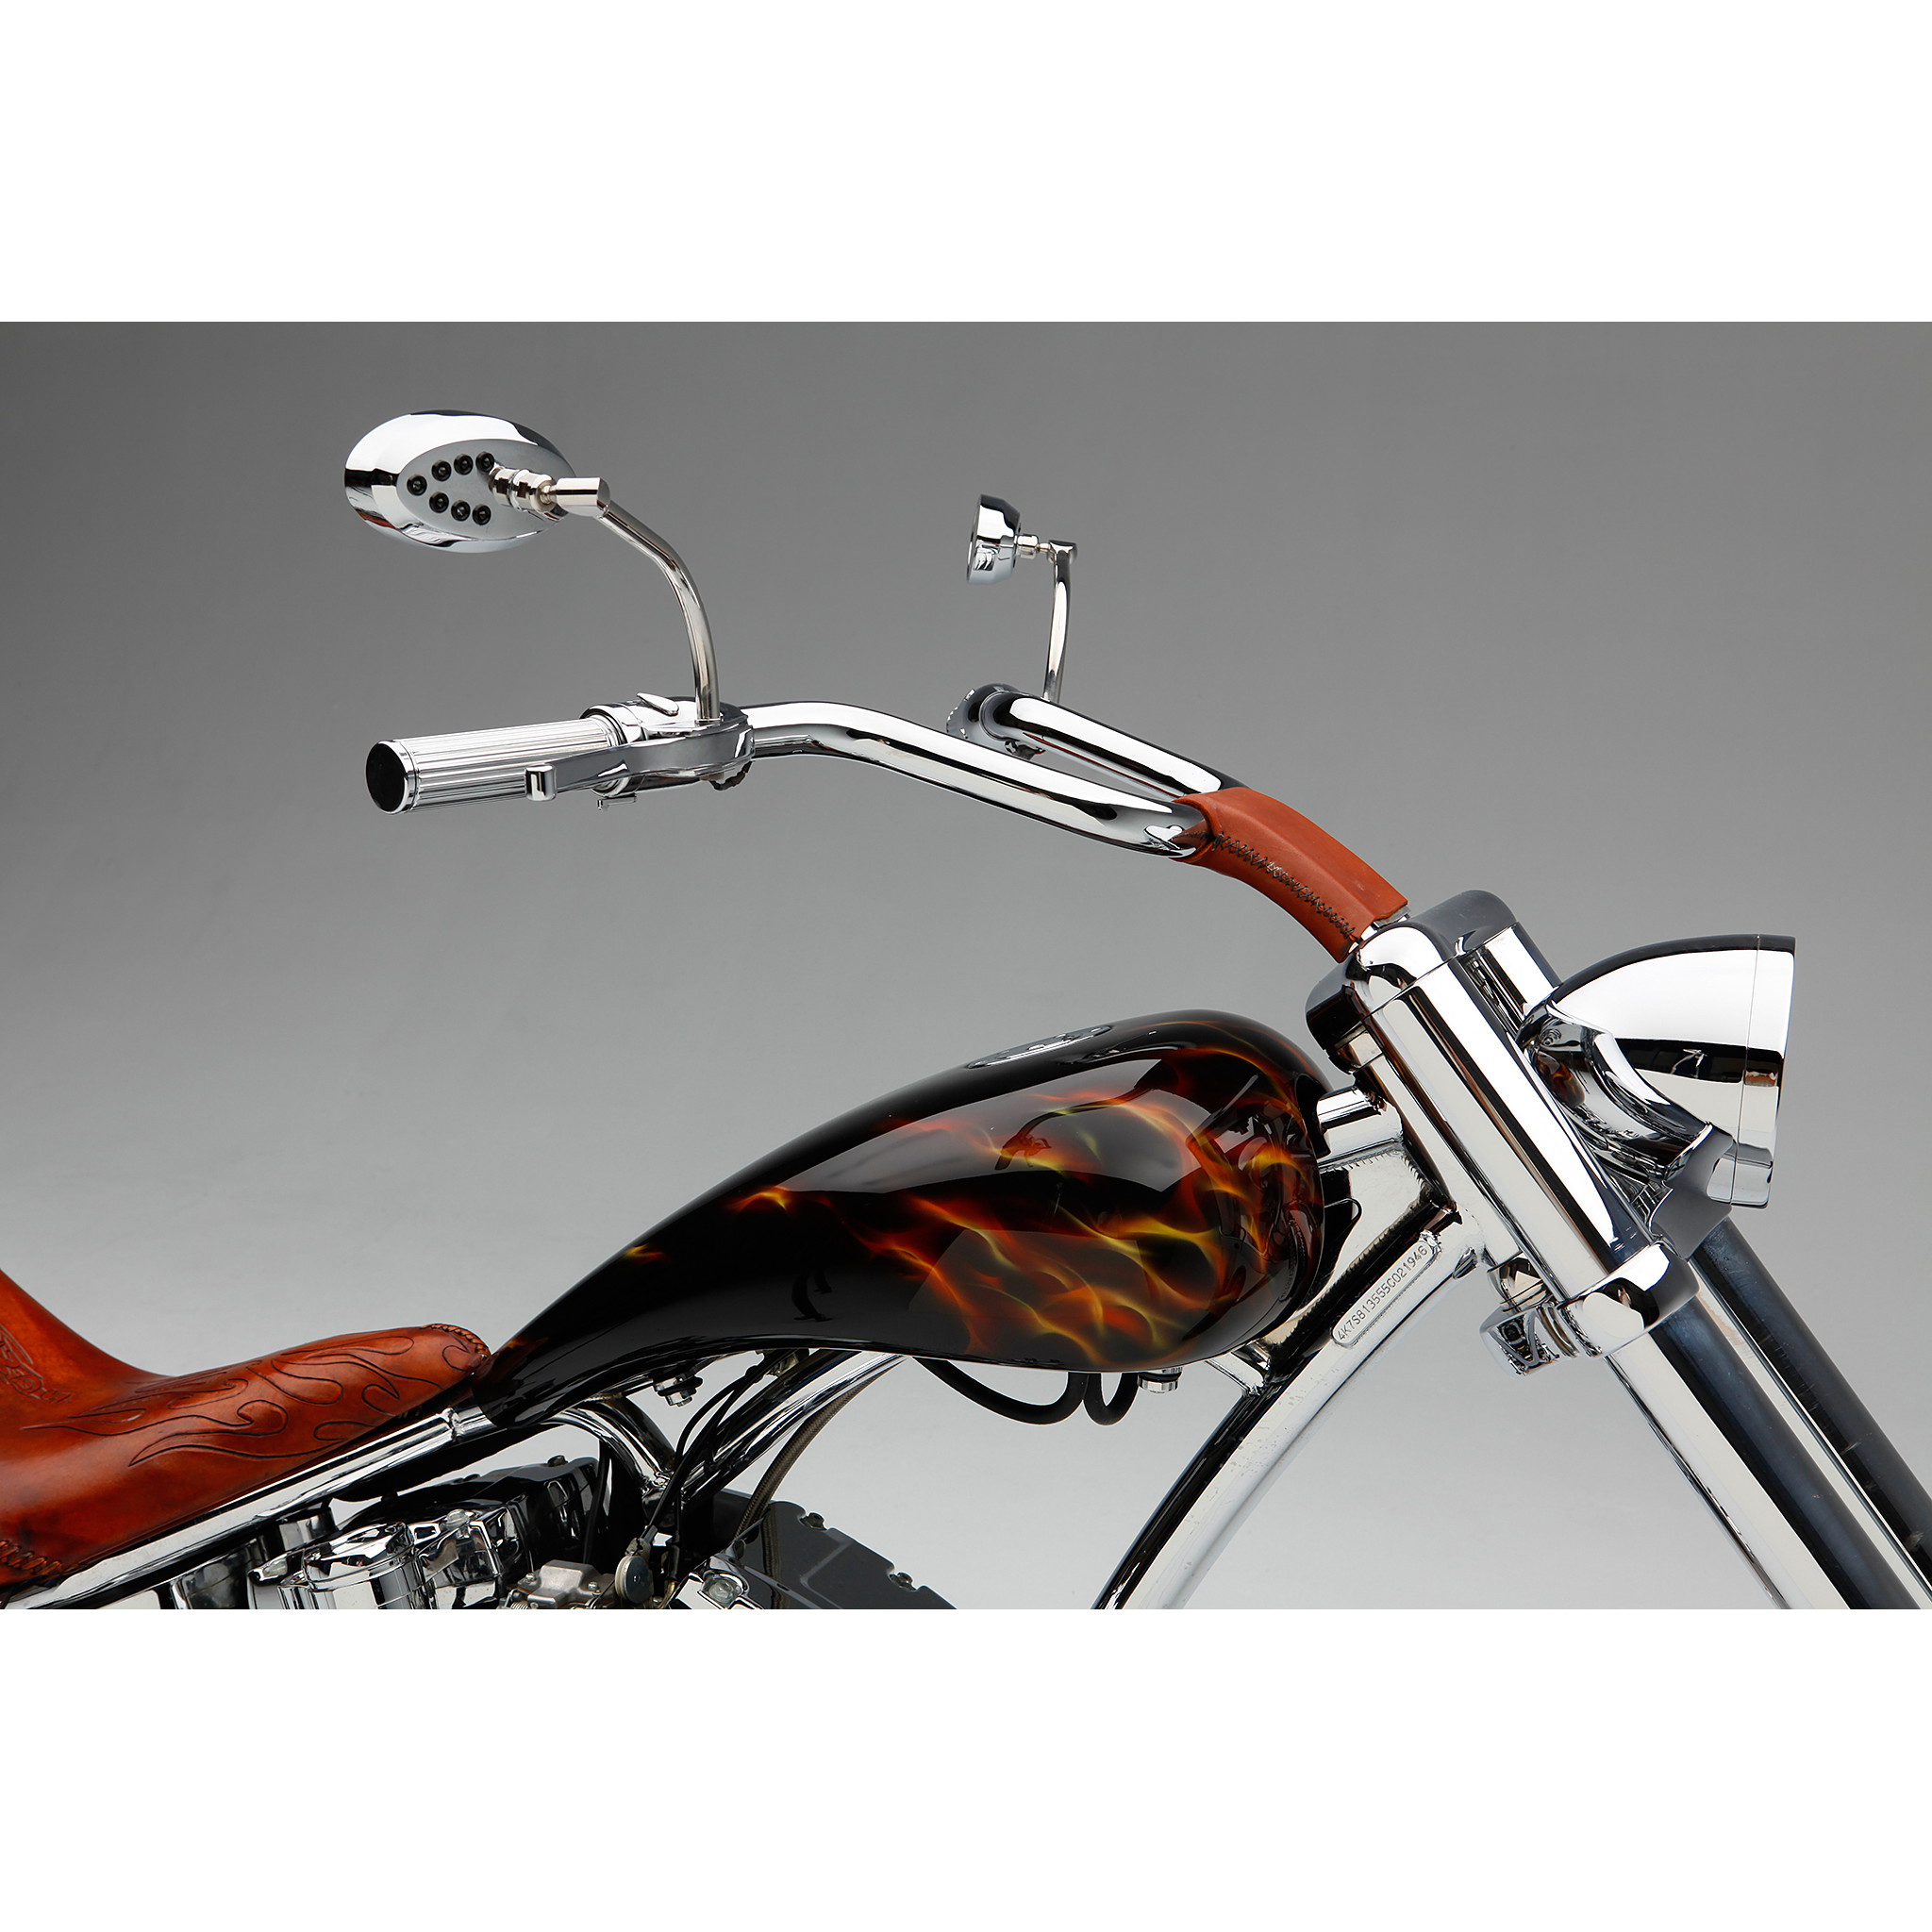 Studio photo of a custom motorcycle chopper handlebars and paintwork